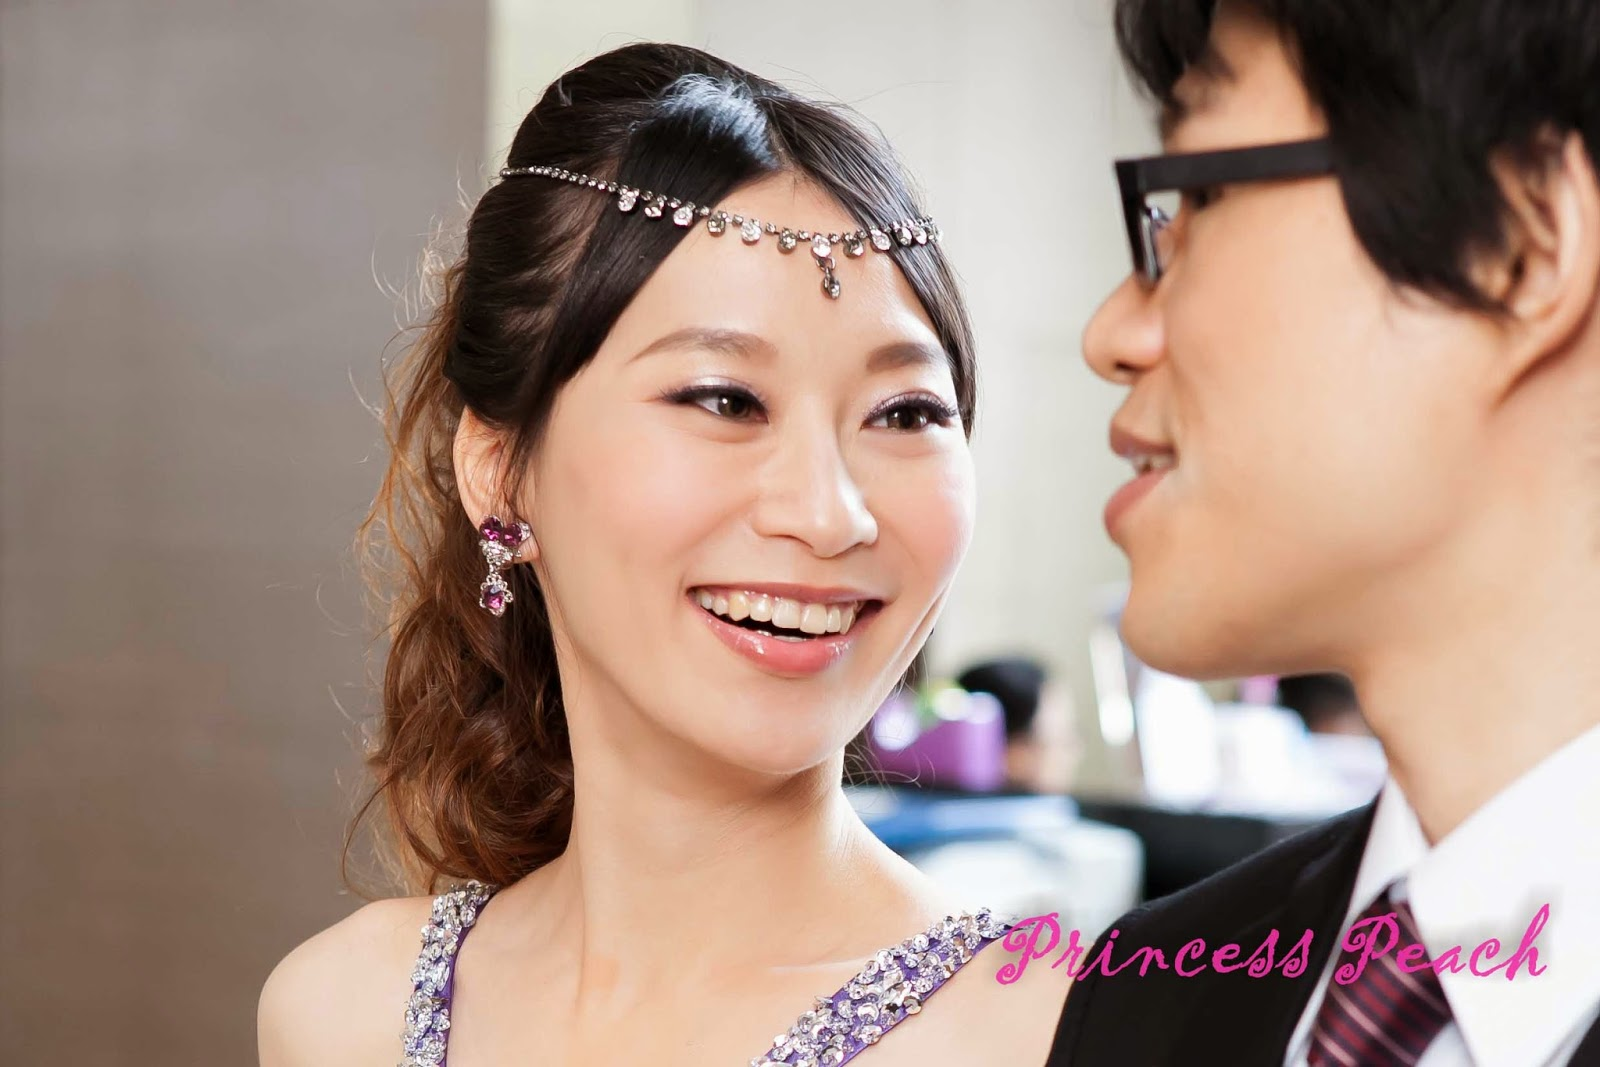 http://twpeach.blogspot.com/2014/04/wedding-make-up.html